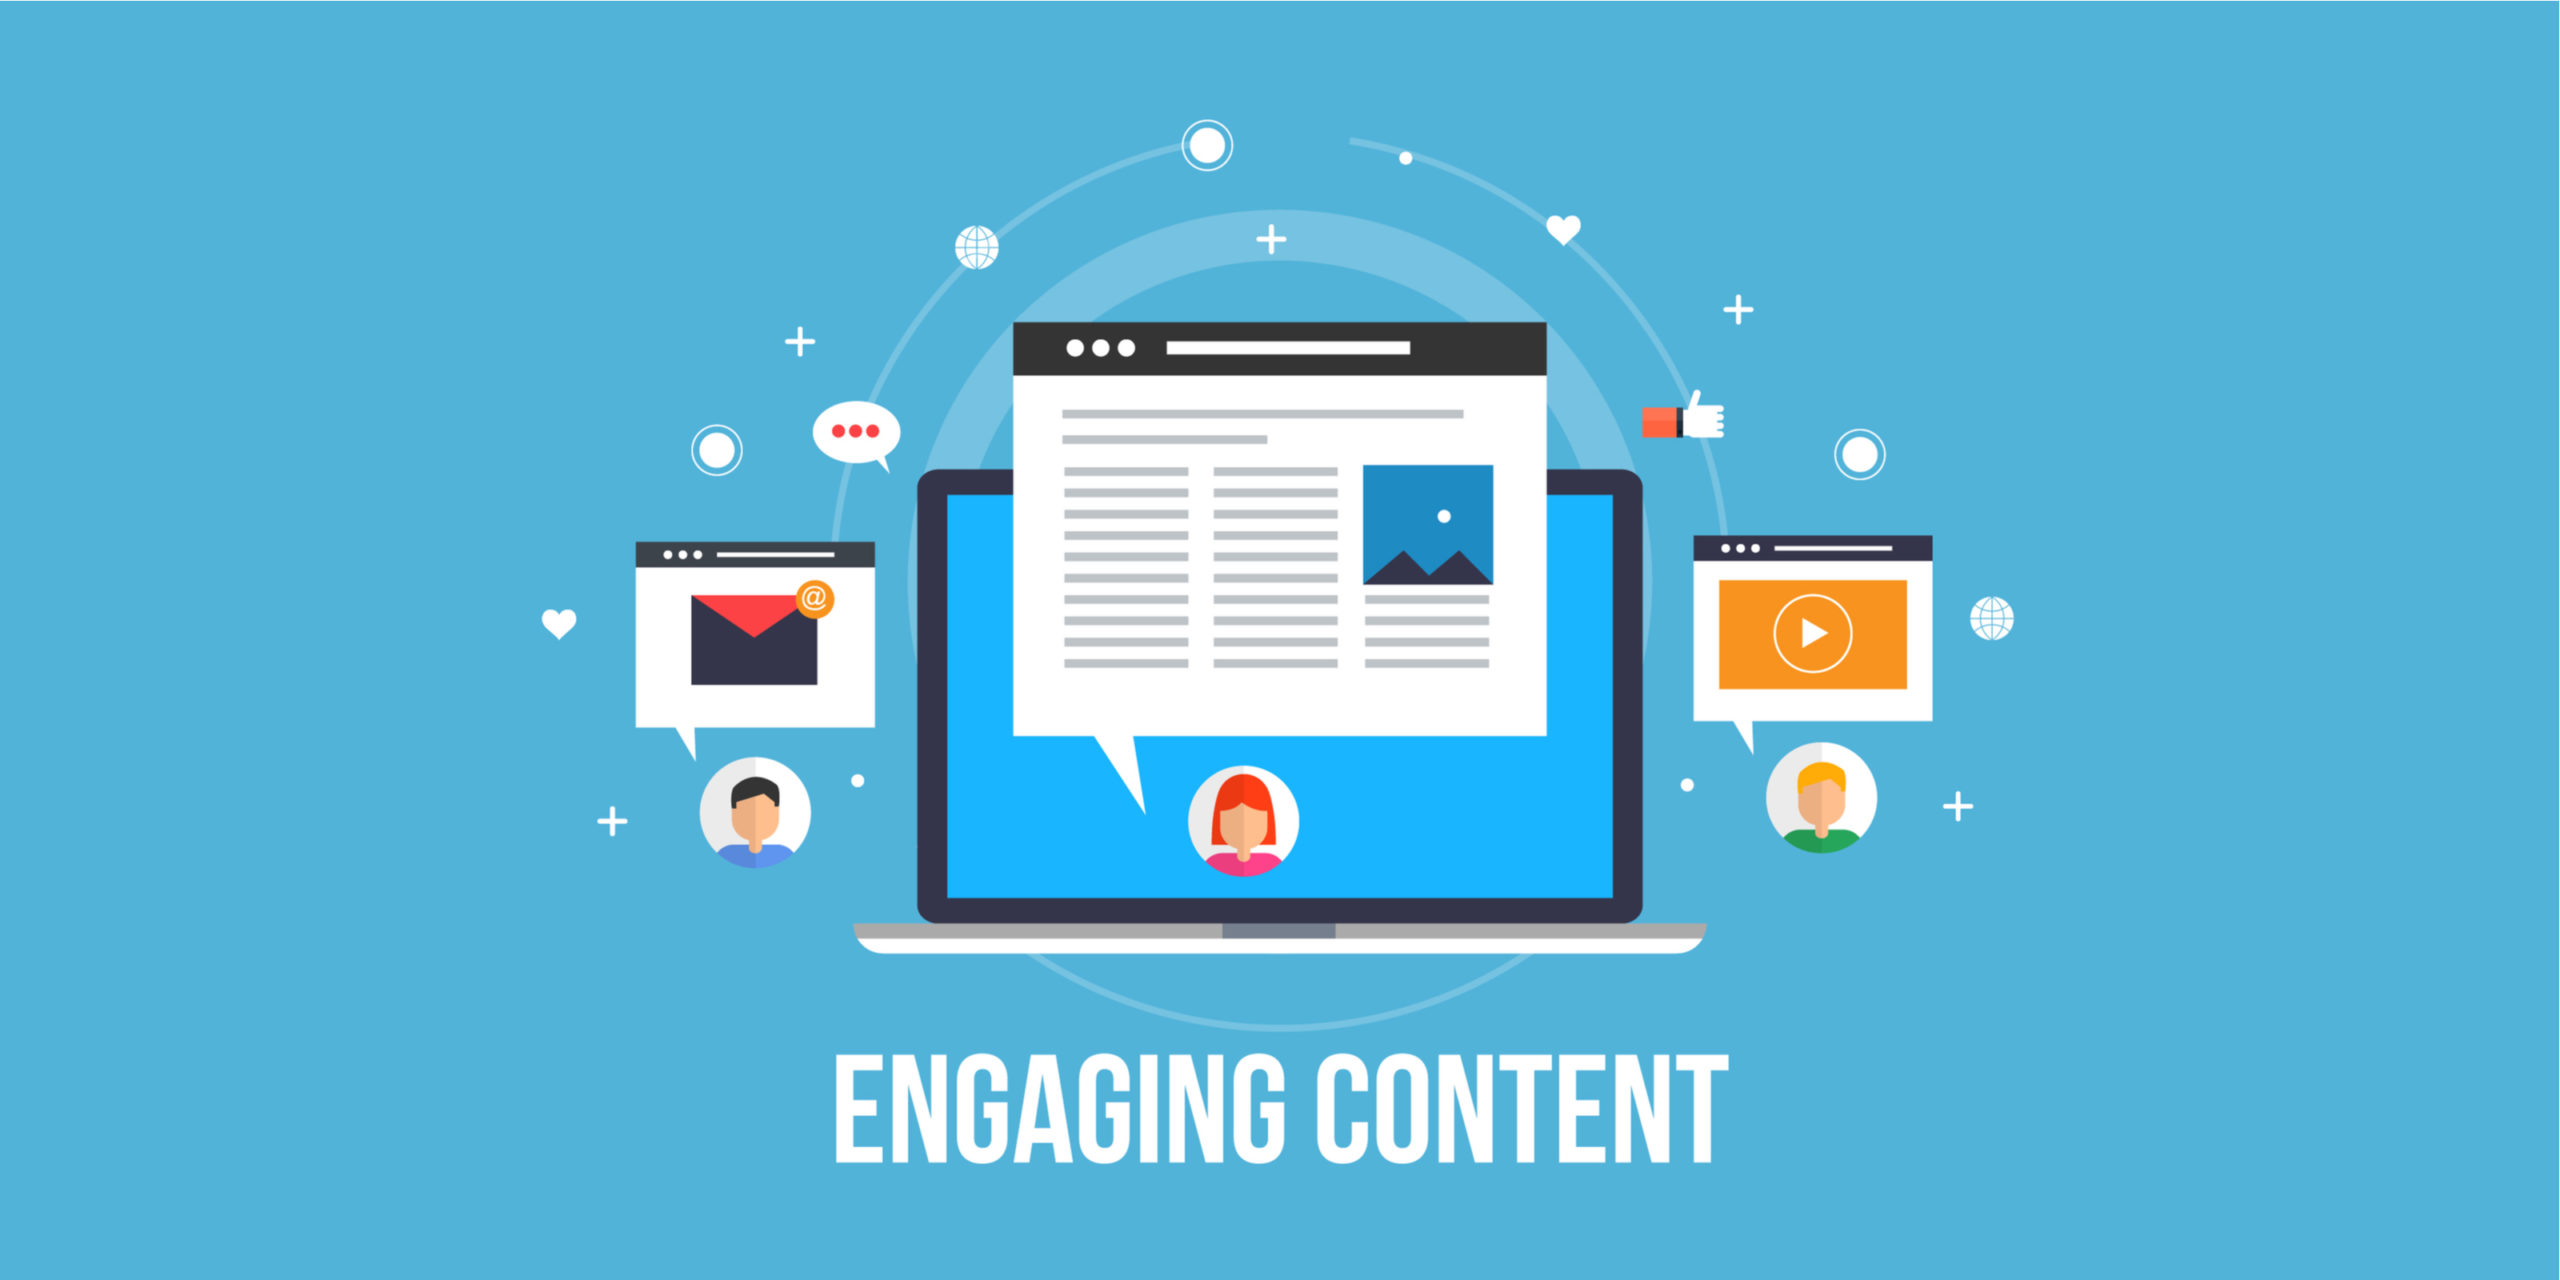 EngagingContent